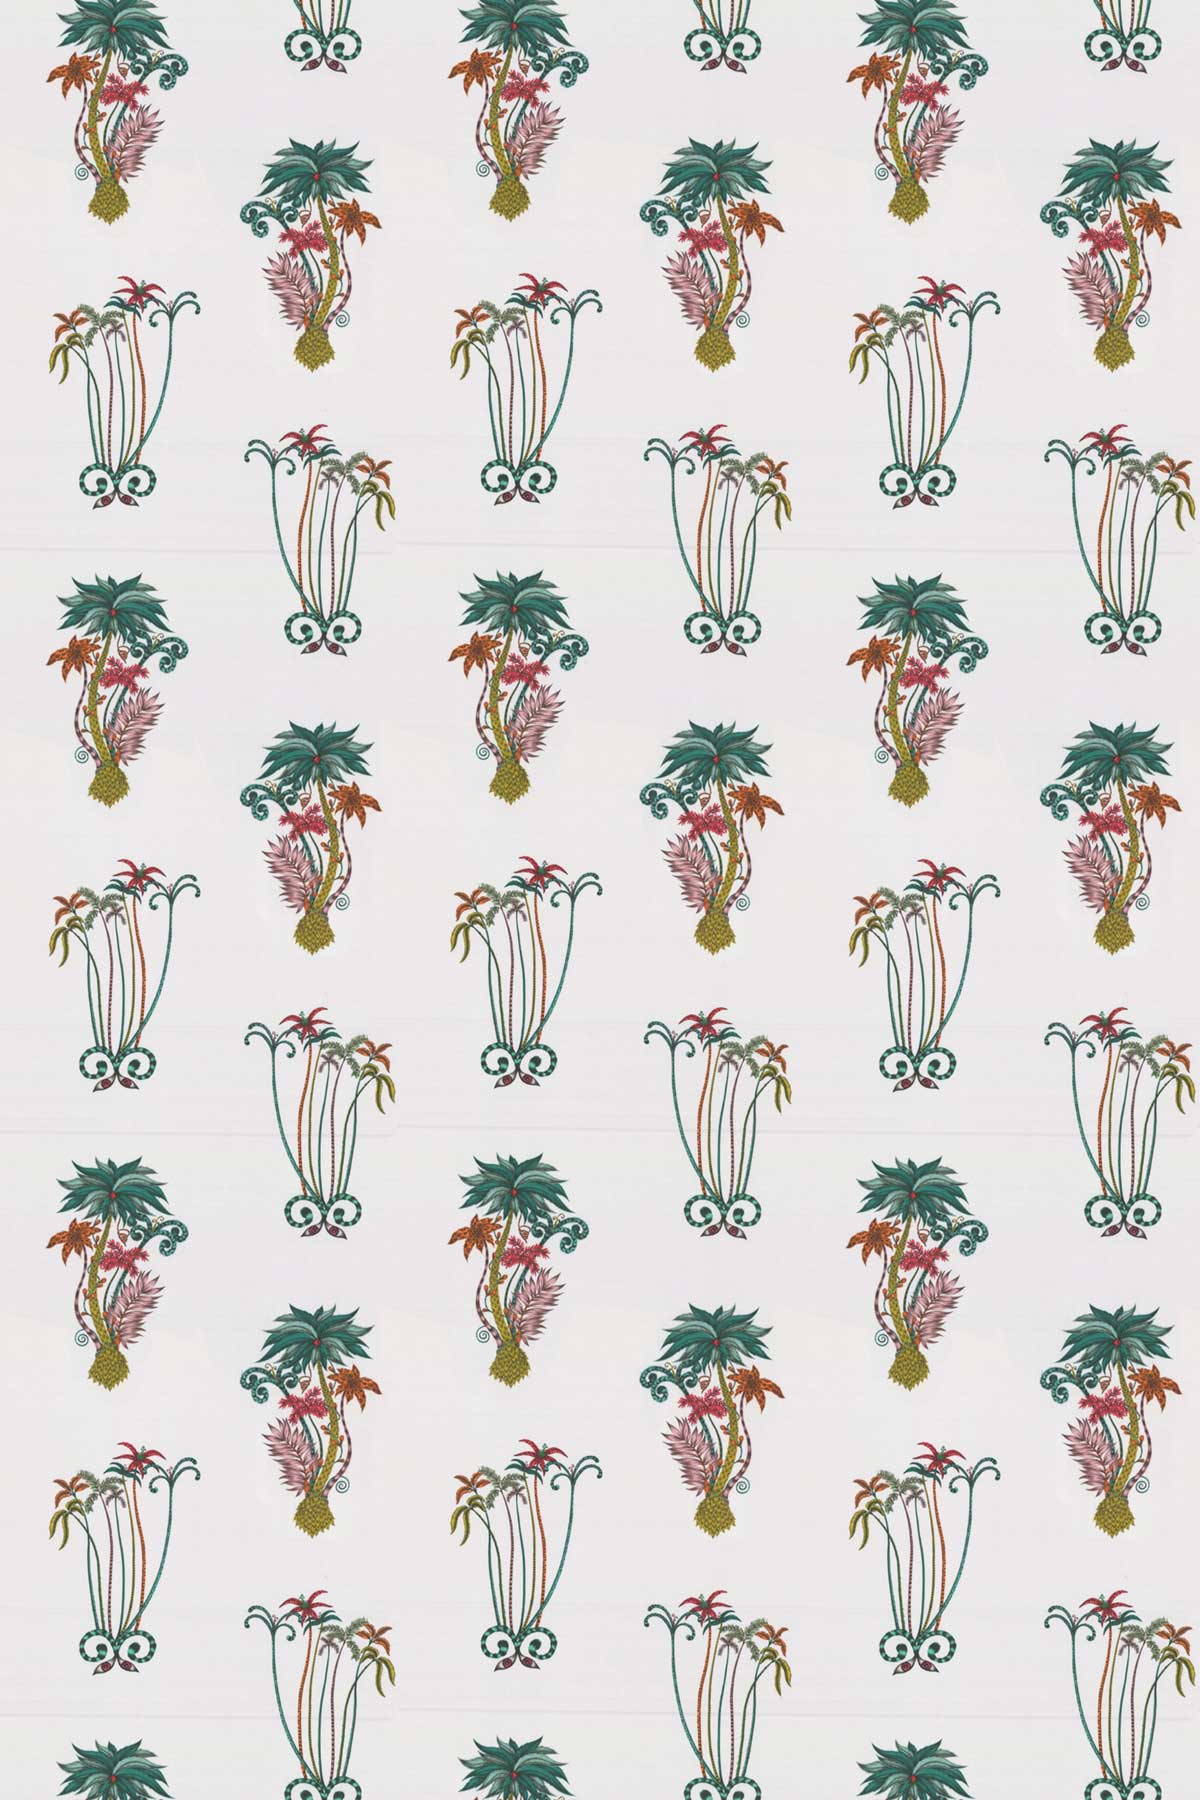 Jungle Palms Fabric - by Emma J Shipley